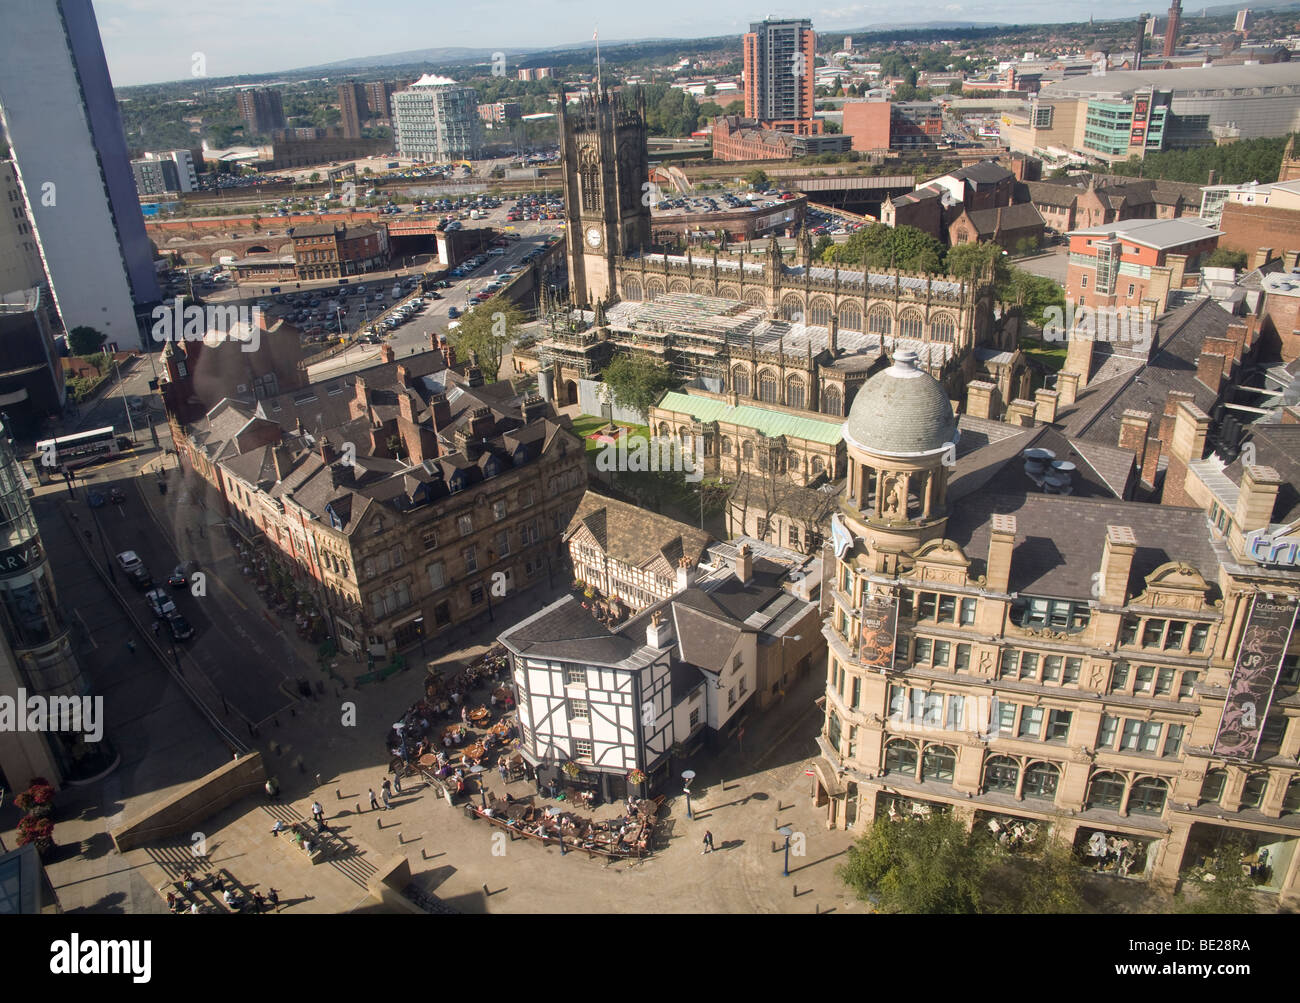 Manchester England UK Looking down on the city centre from a capsule of the MEN Wheel in Exchange Square - Stock Image